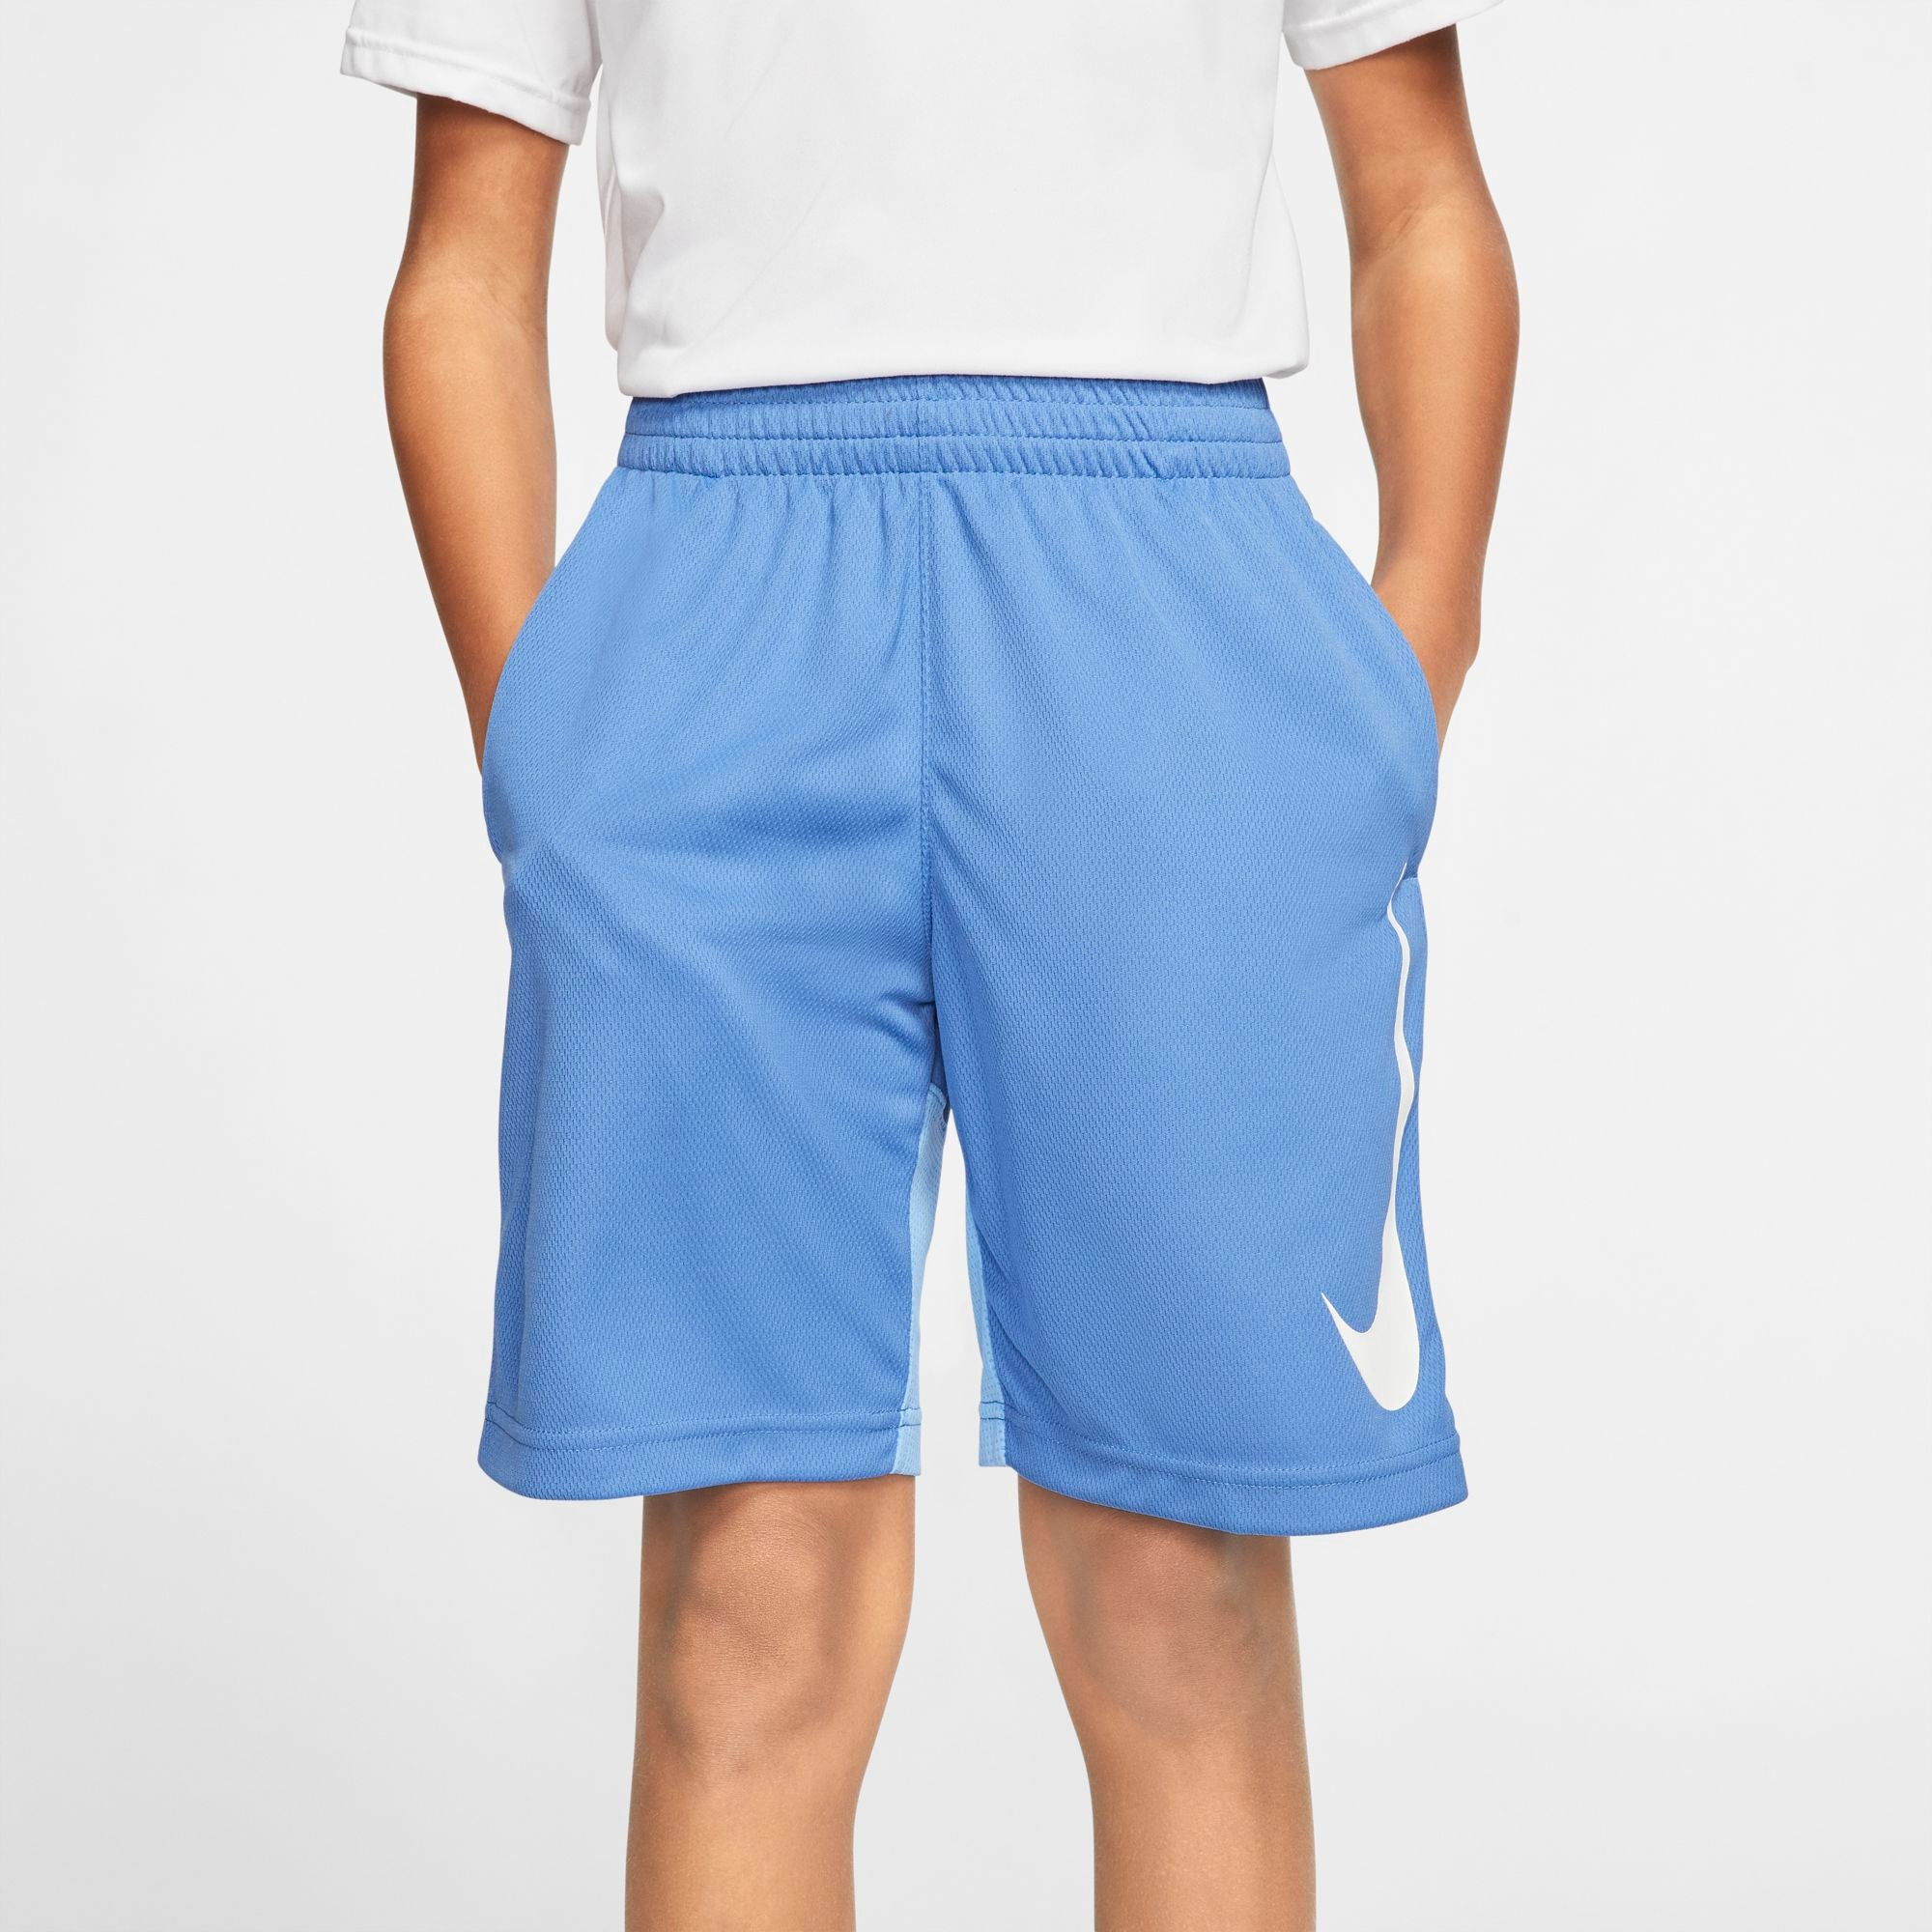 Nike Kids Dry Fit Basketball Shorts - Mountain Blue/University Blue/White